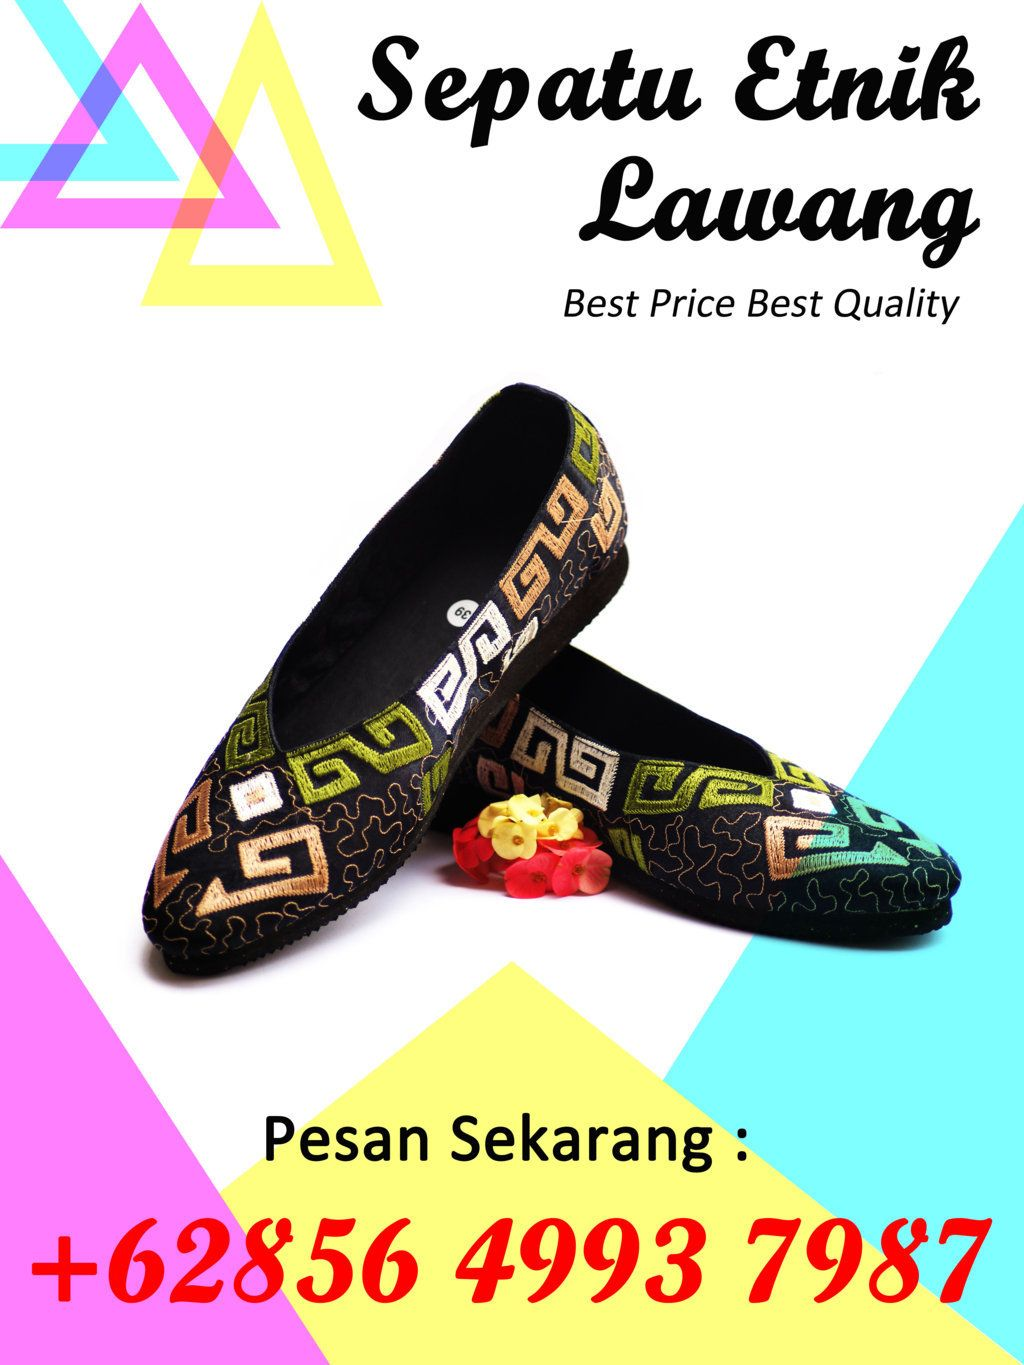 Flat Shoes Awet Bordir Lawang Flat Shoes Bahan Bordir Lawang